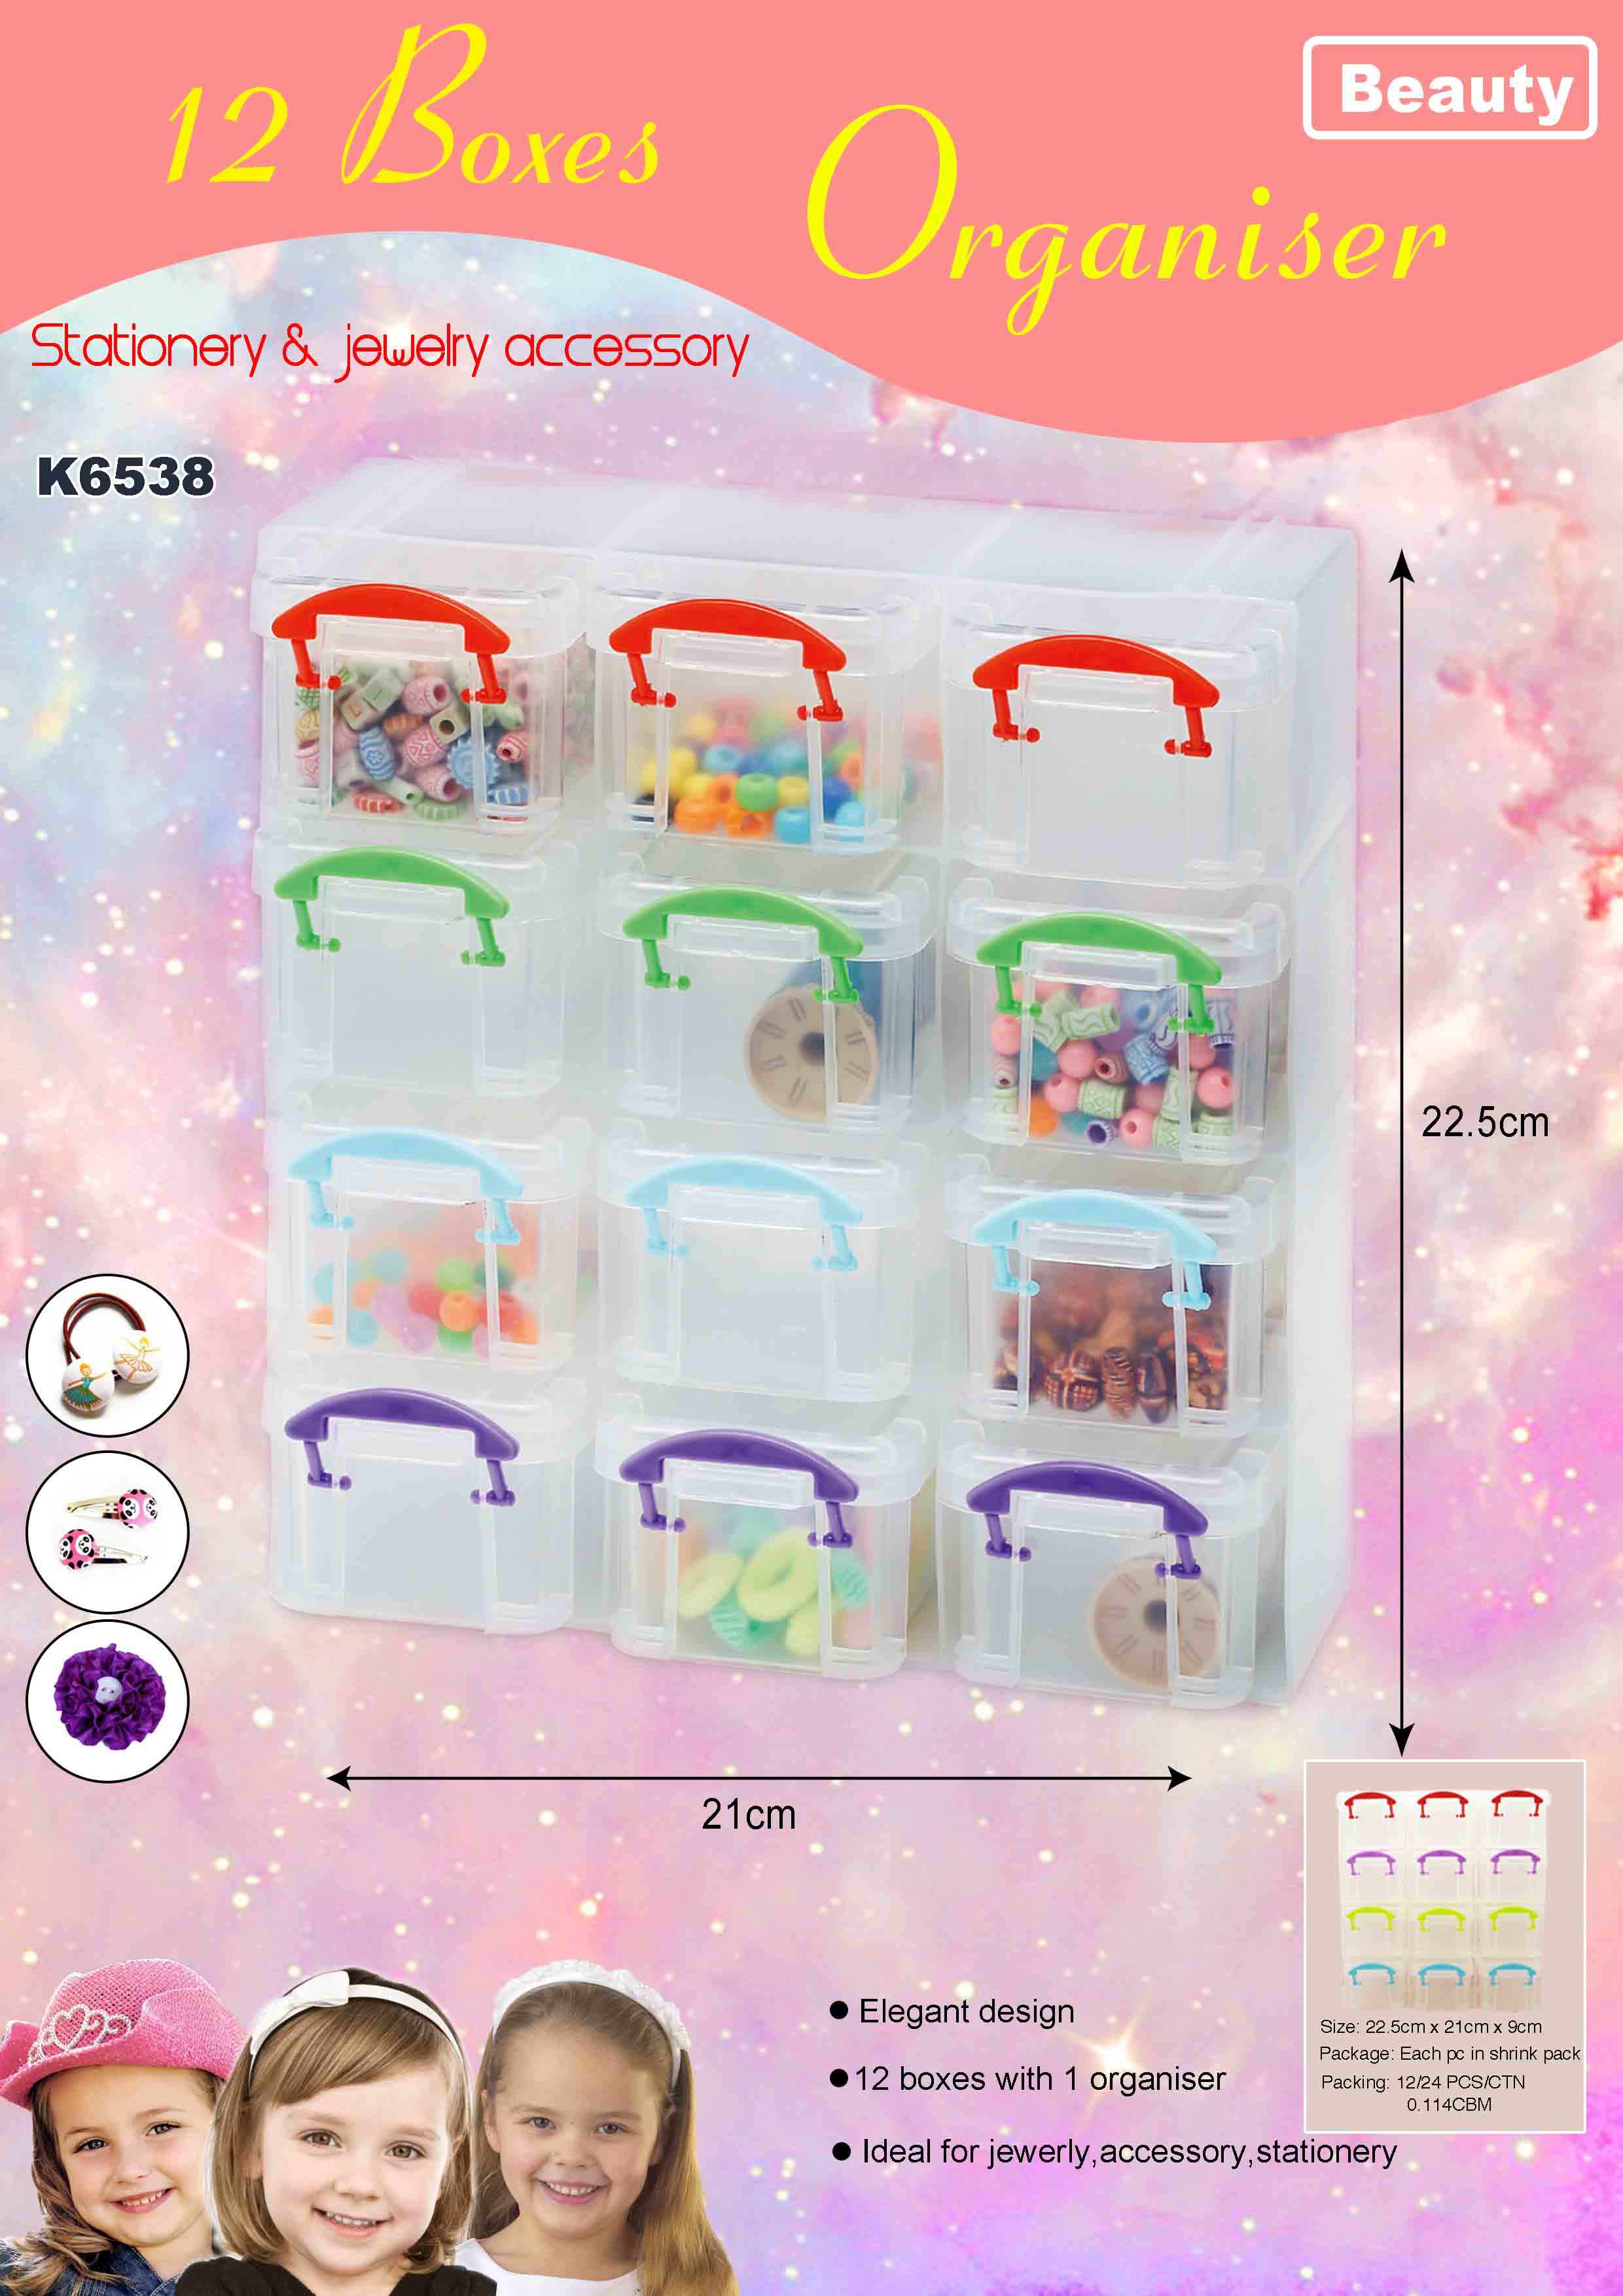 K6538A 12 Boxes Organiser (For Beauty)